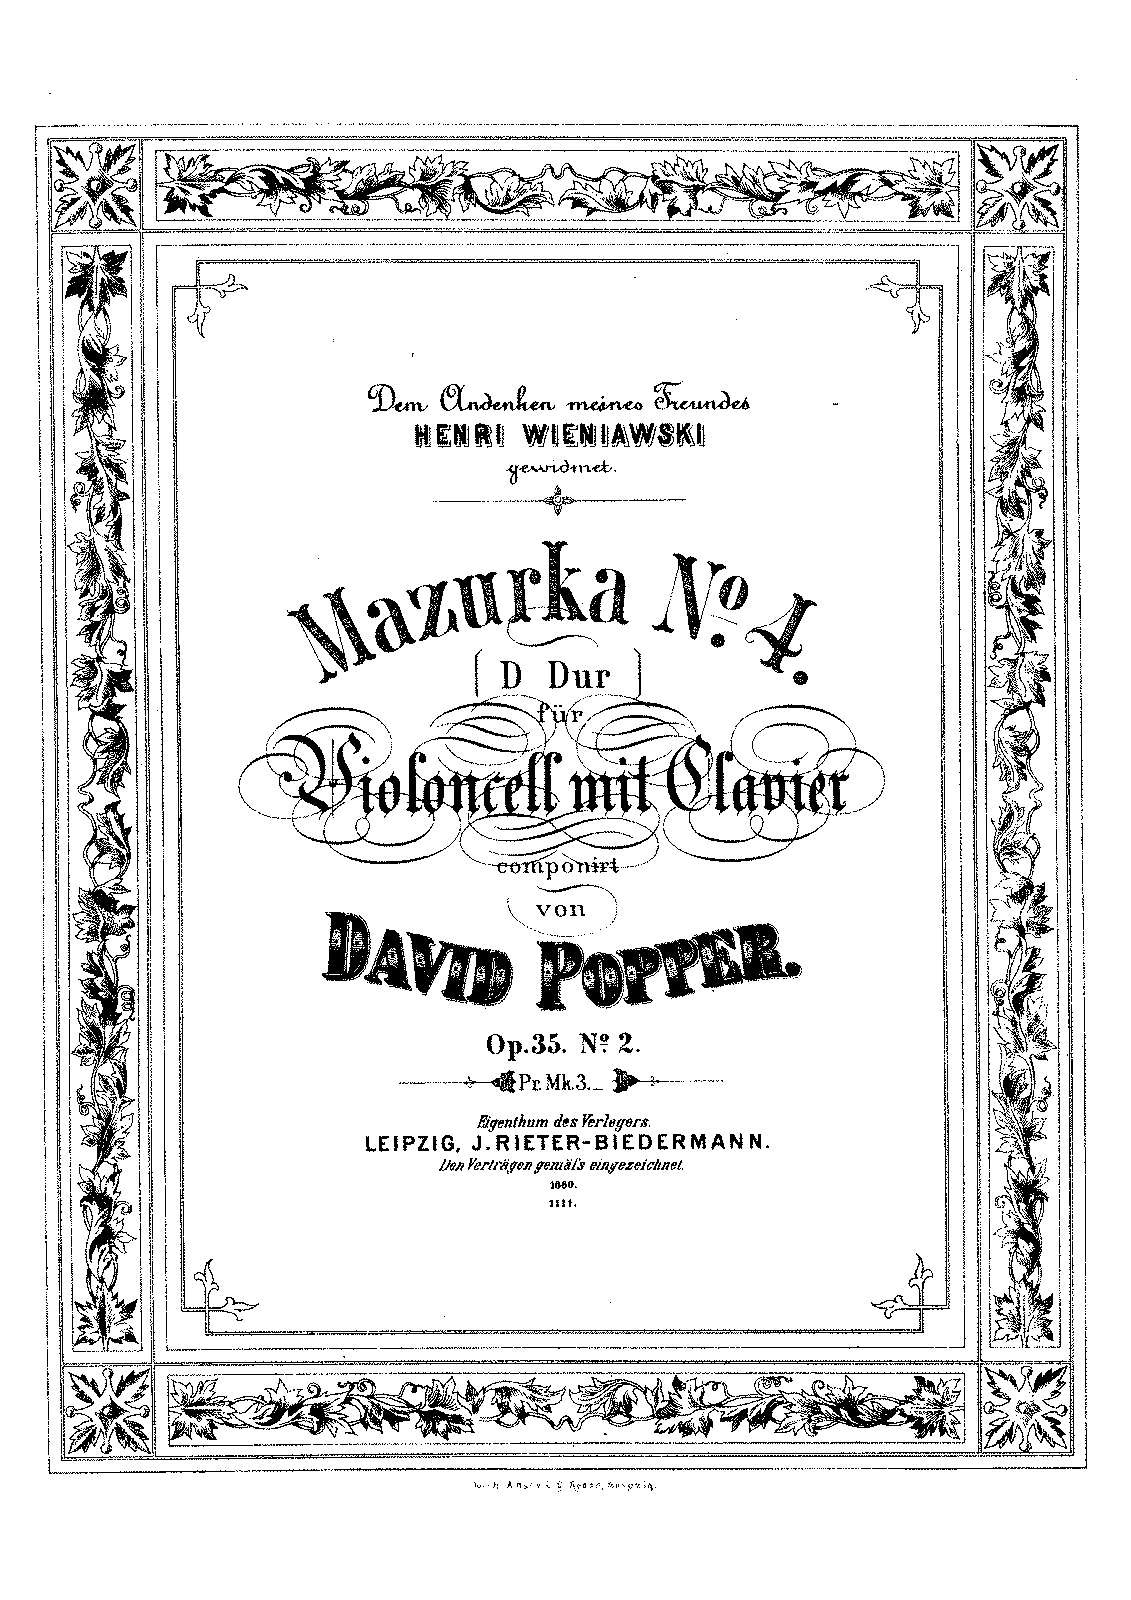 PMLP54886-Popper Mazurka No4 Op35No2 Cello Piano.pdf